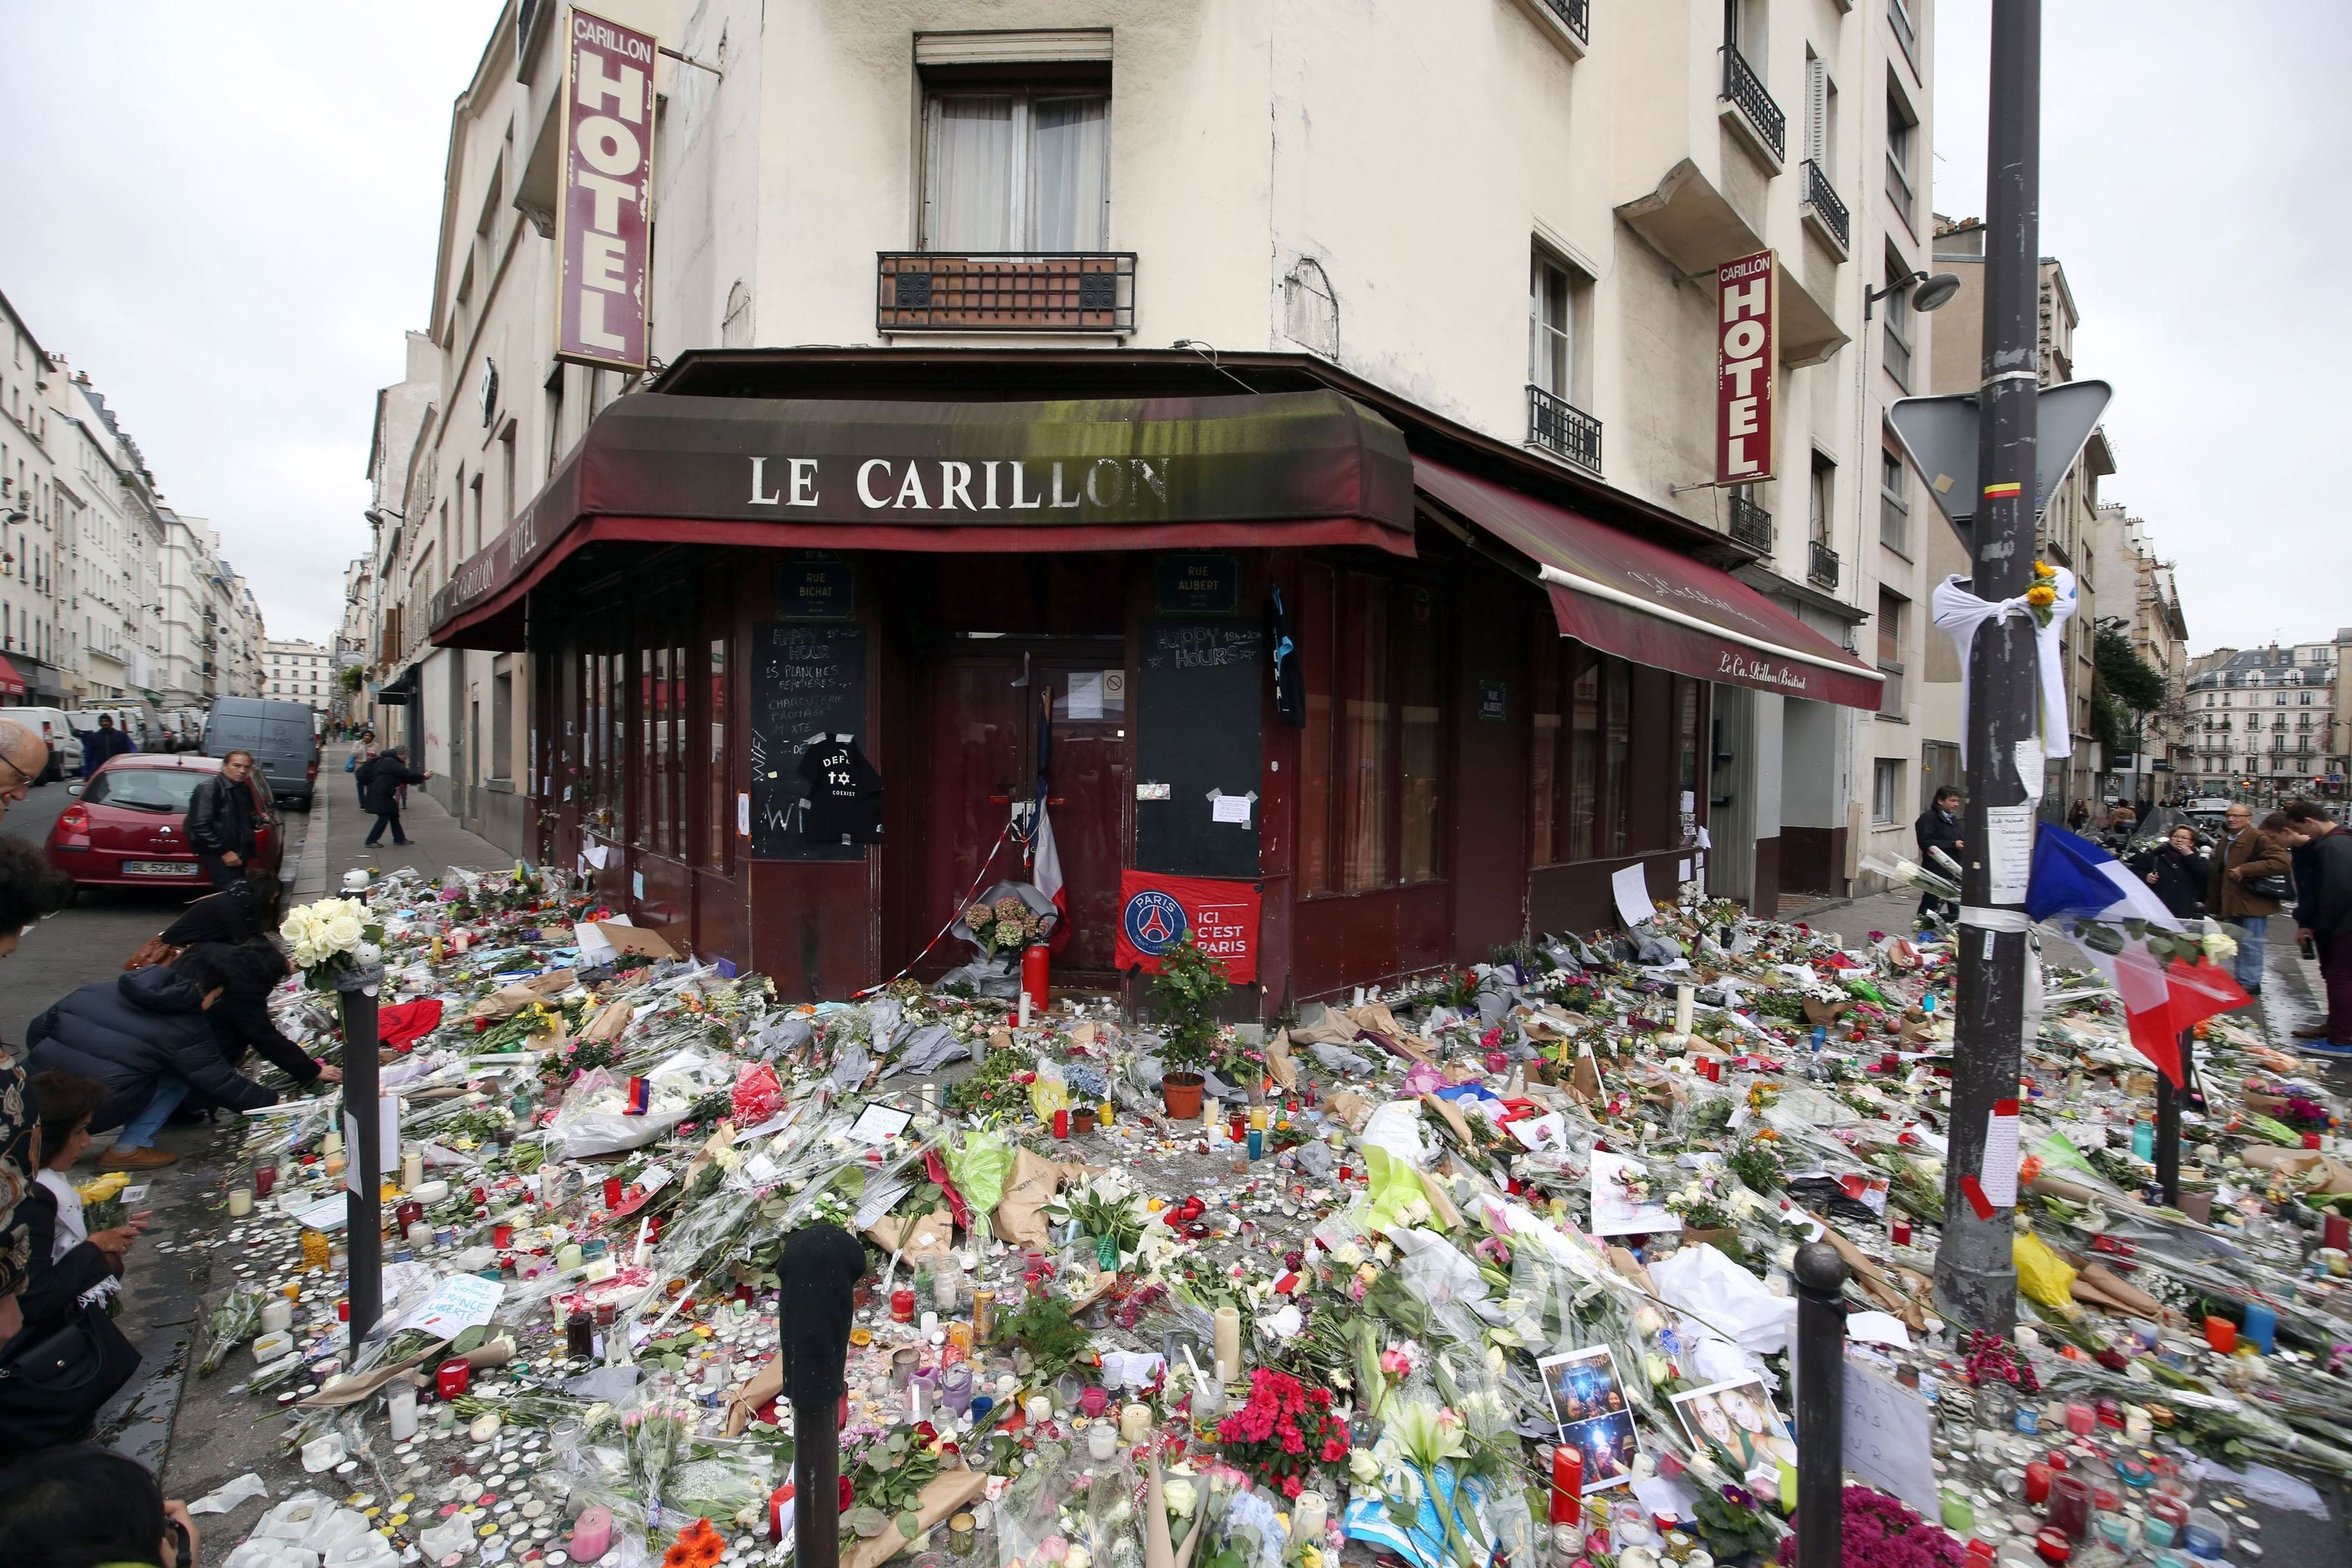 Bouquets of flowers left at the scene of one of the attacks in Paris.